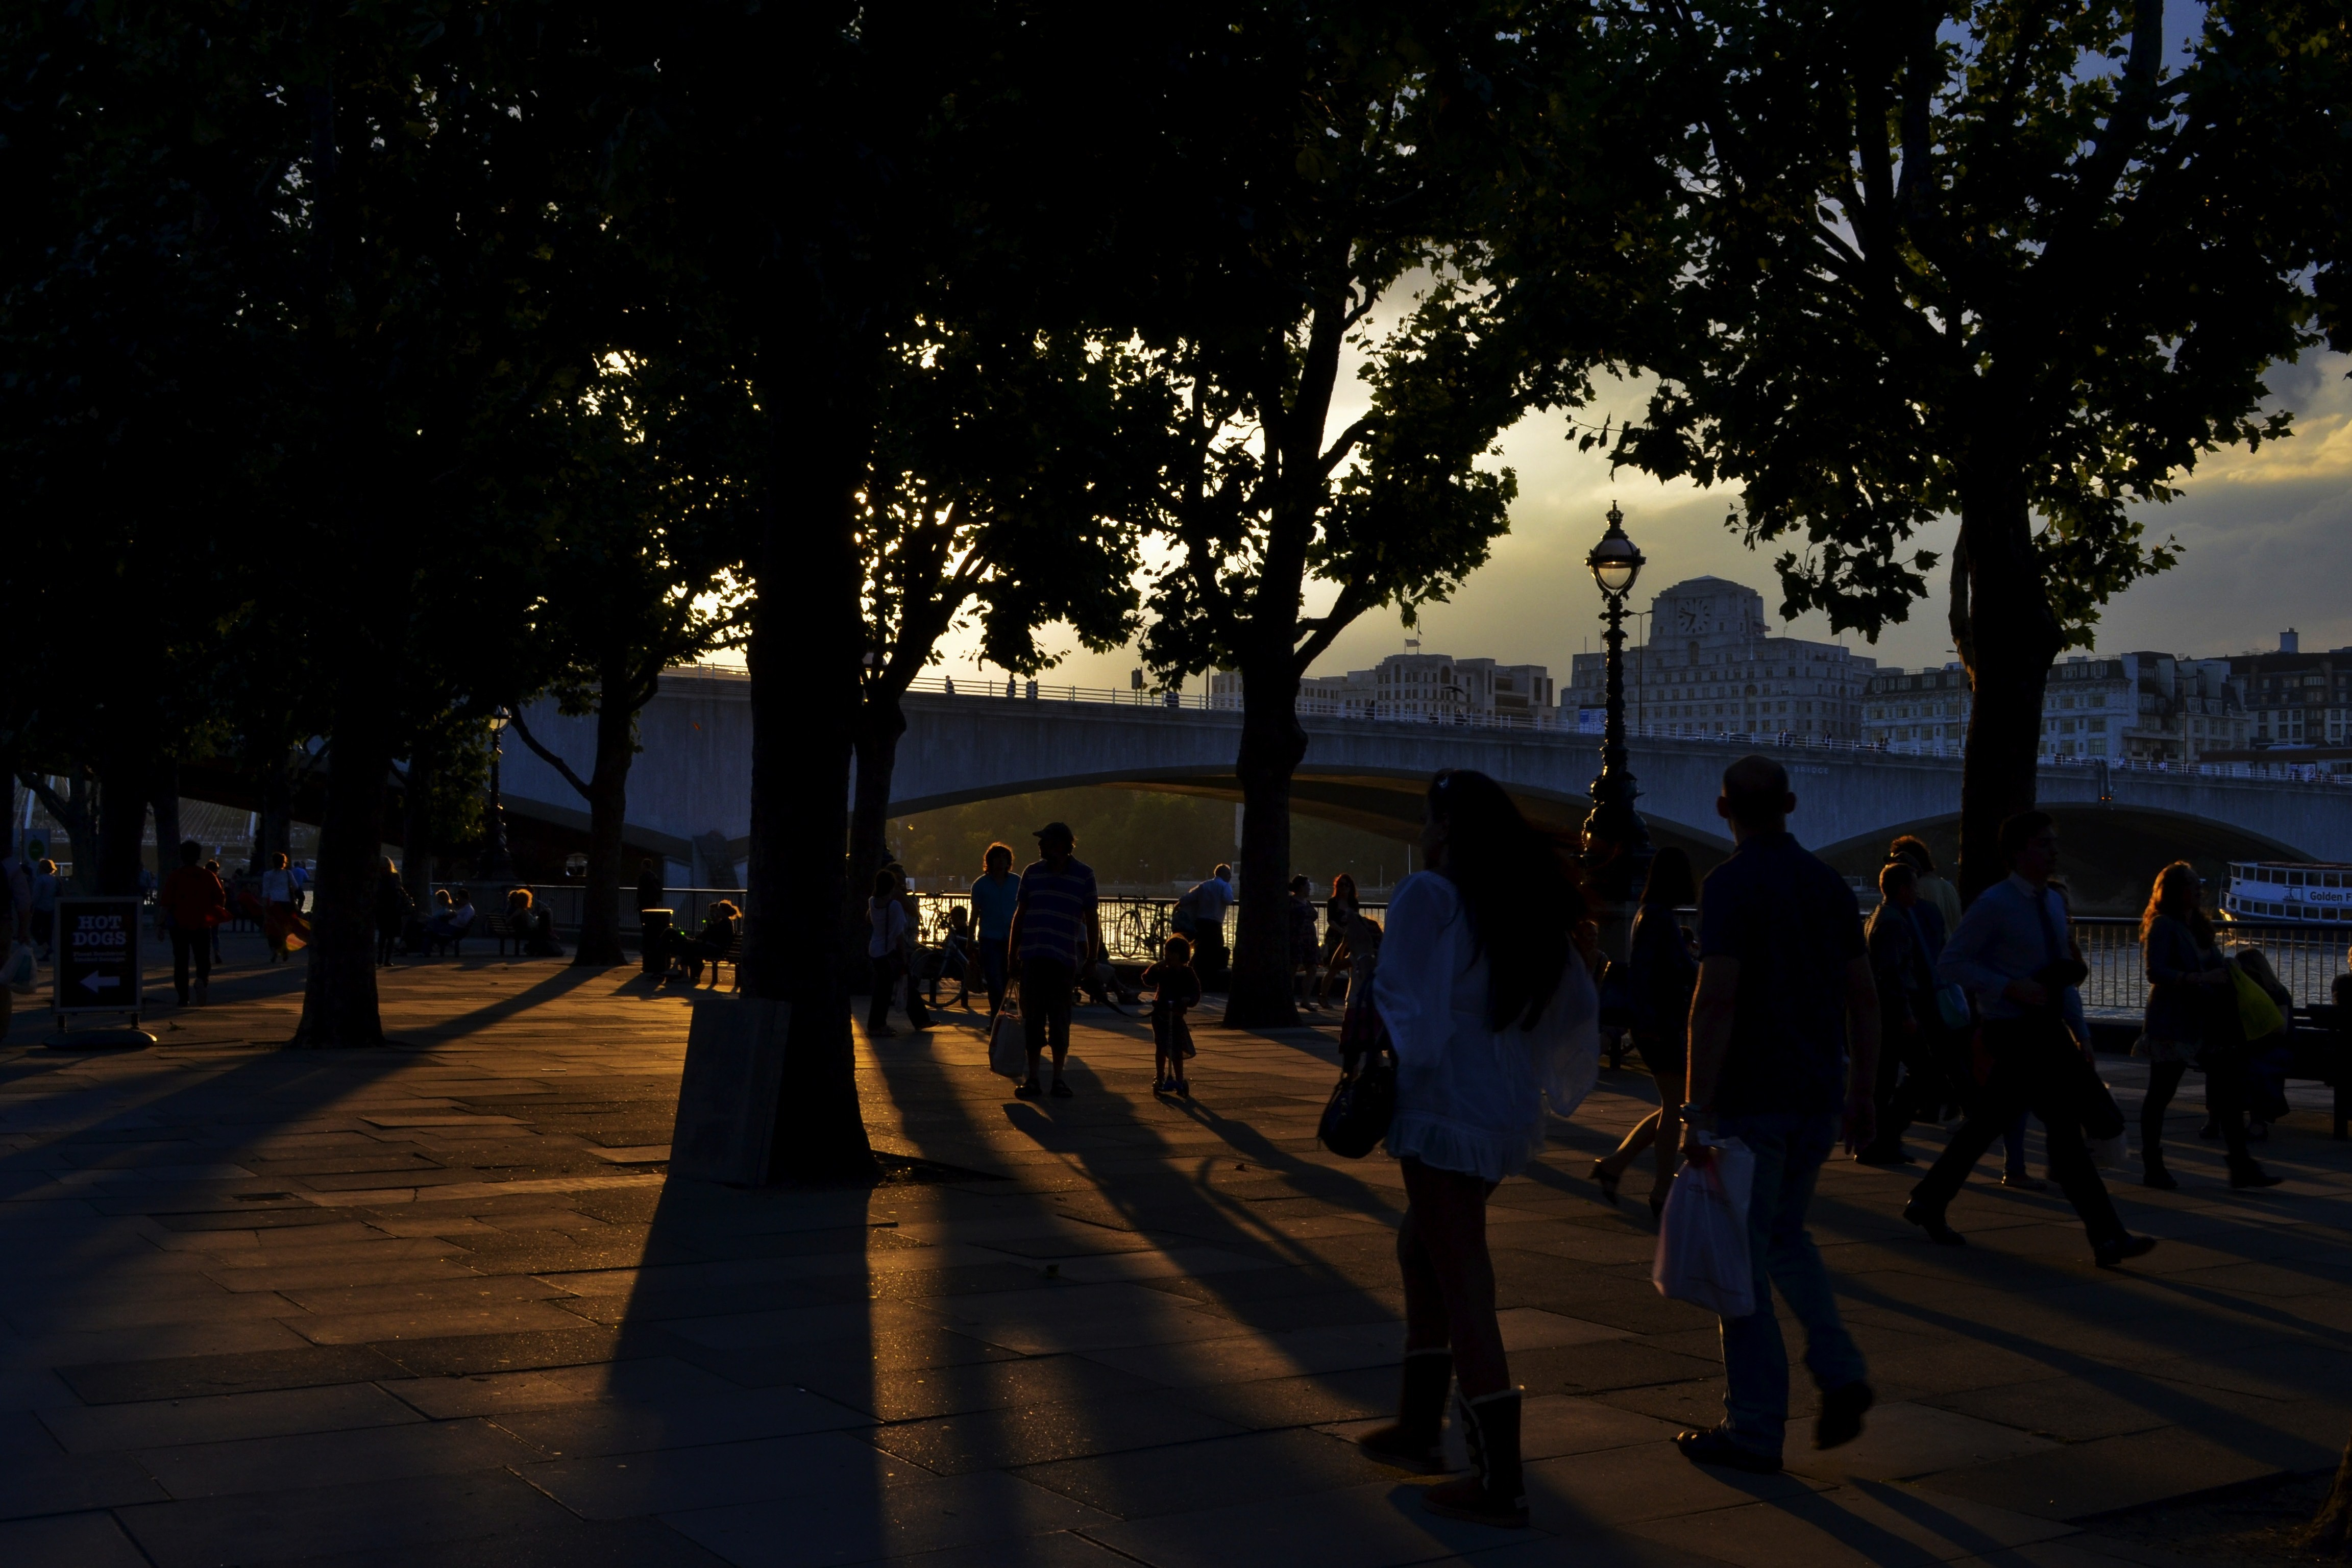 sunset Trees London shadows HD Wallpaper